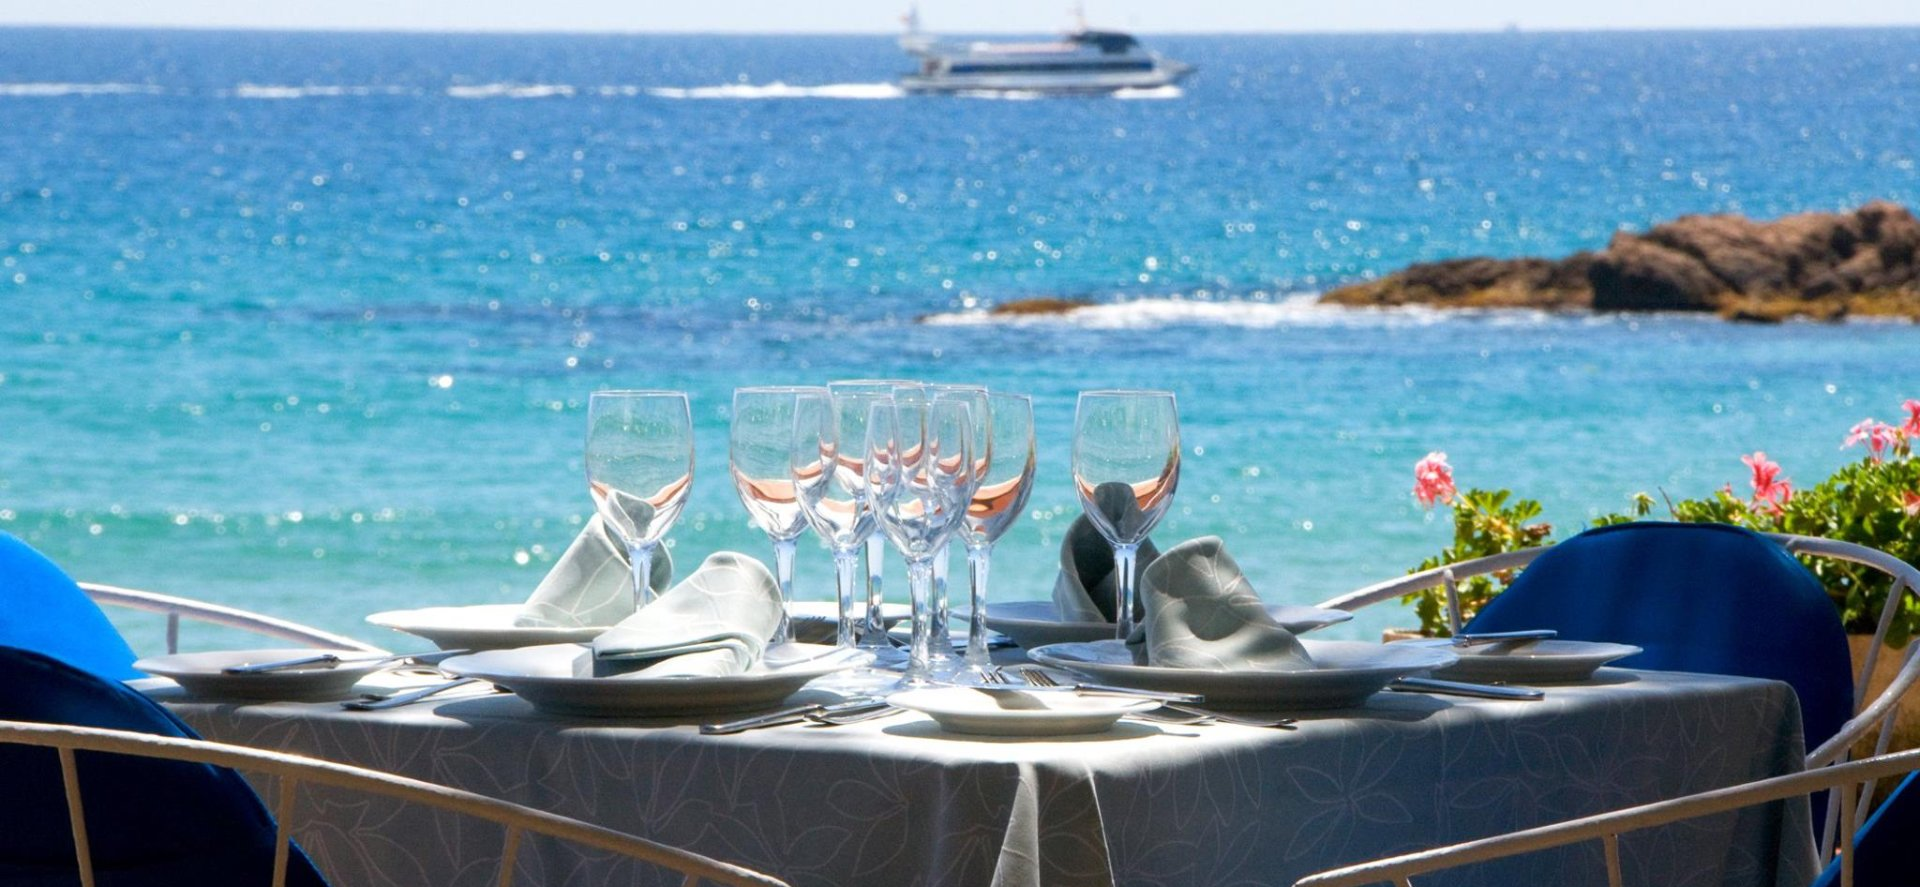 Where to eat in Lloret de Mar